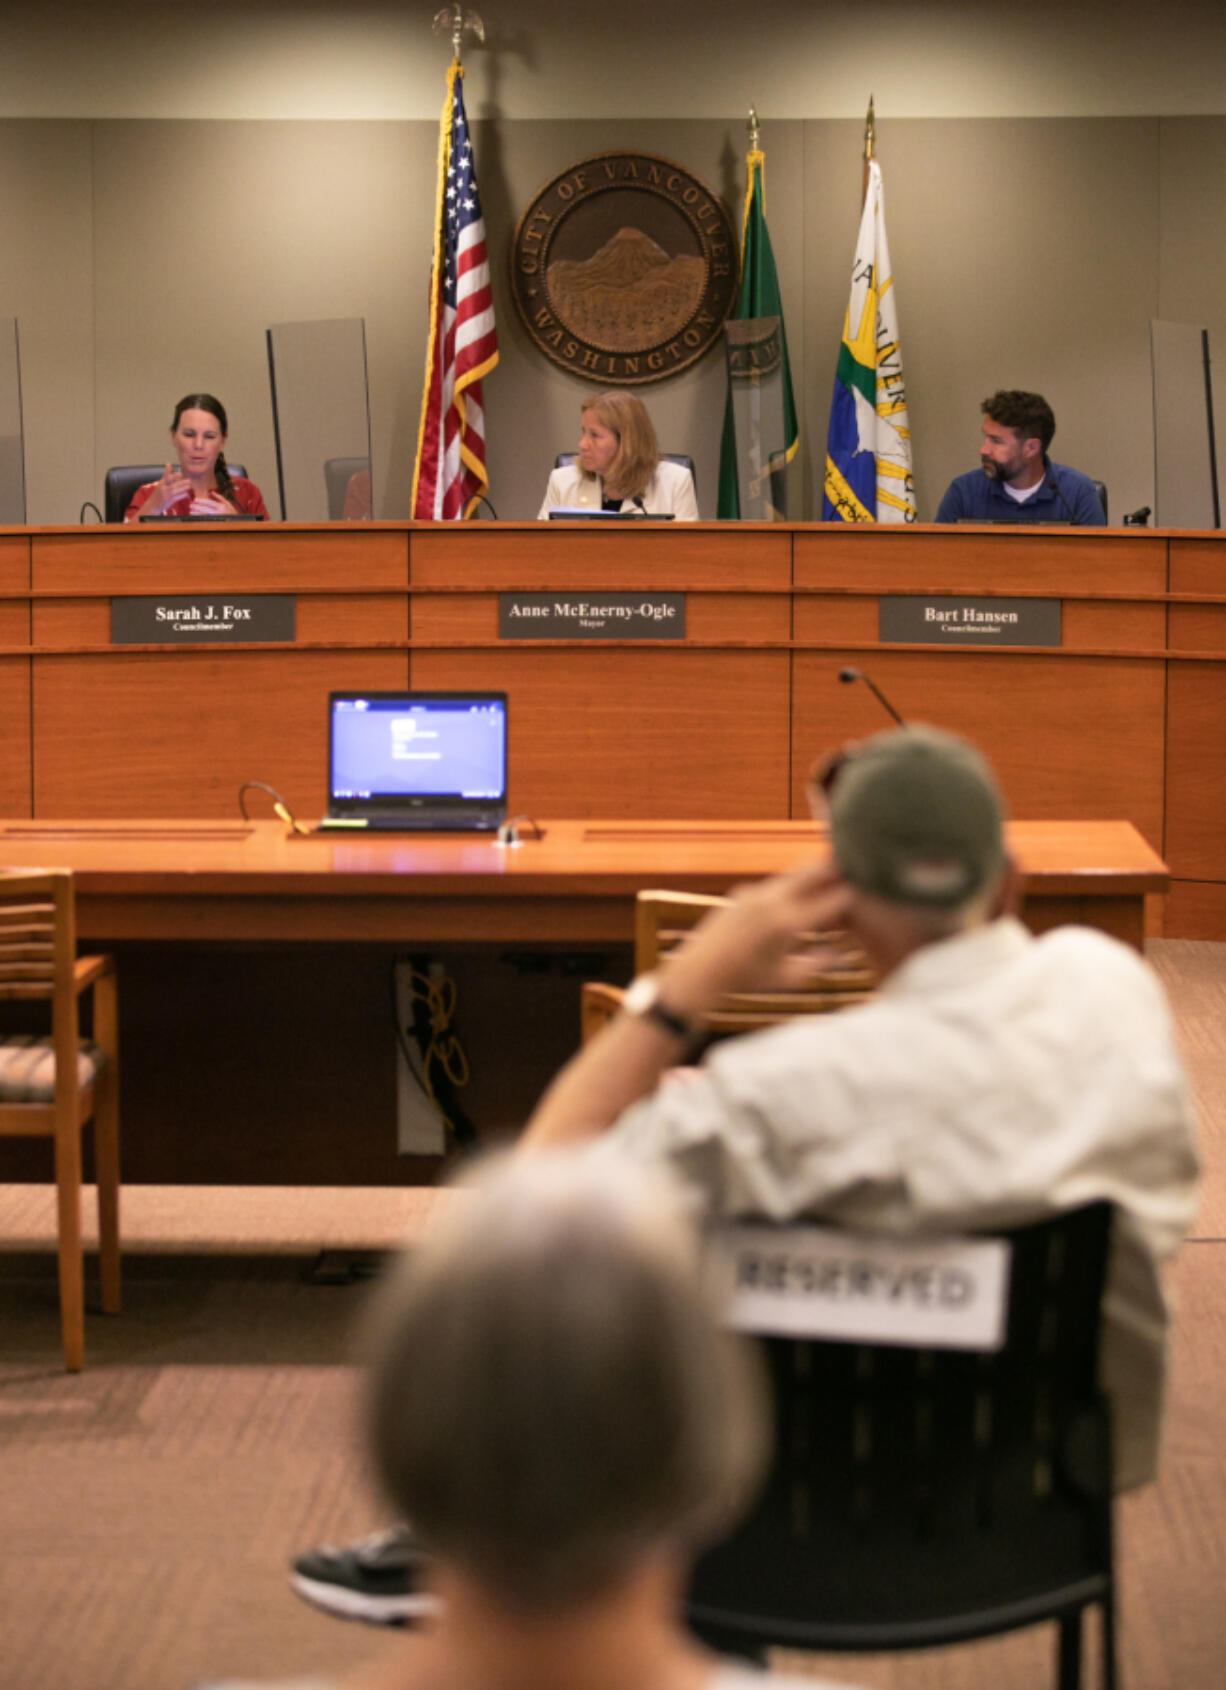 Vancouver City Councilor Sarah Fox speaks about the proposed Interstate 5 Bridge expansion as Mayor Anne Mc-Enerny-Ogle and Councilmember Bart Hansen listen on Monday night during the first city council meeting to be had in person since the pandemic shutdowns began at Vancouver City Hall.